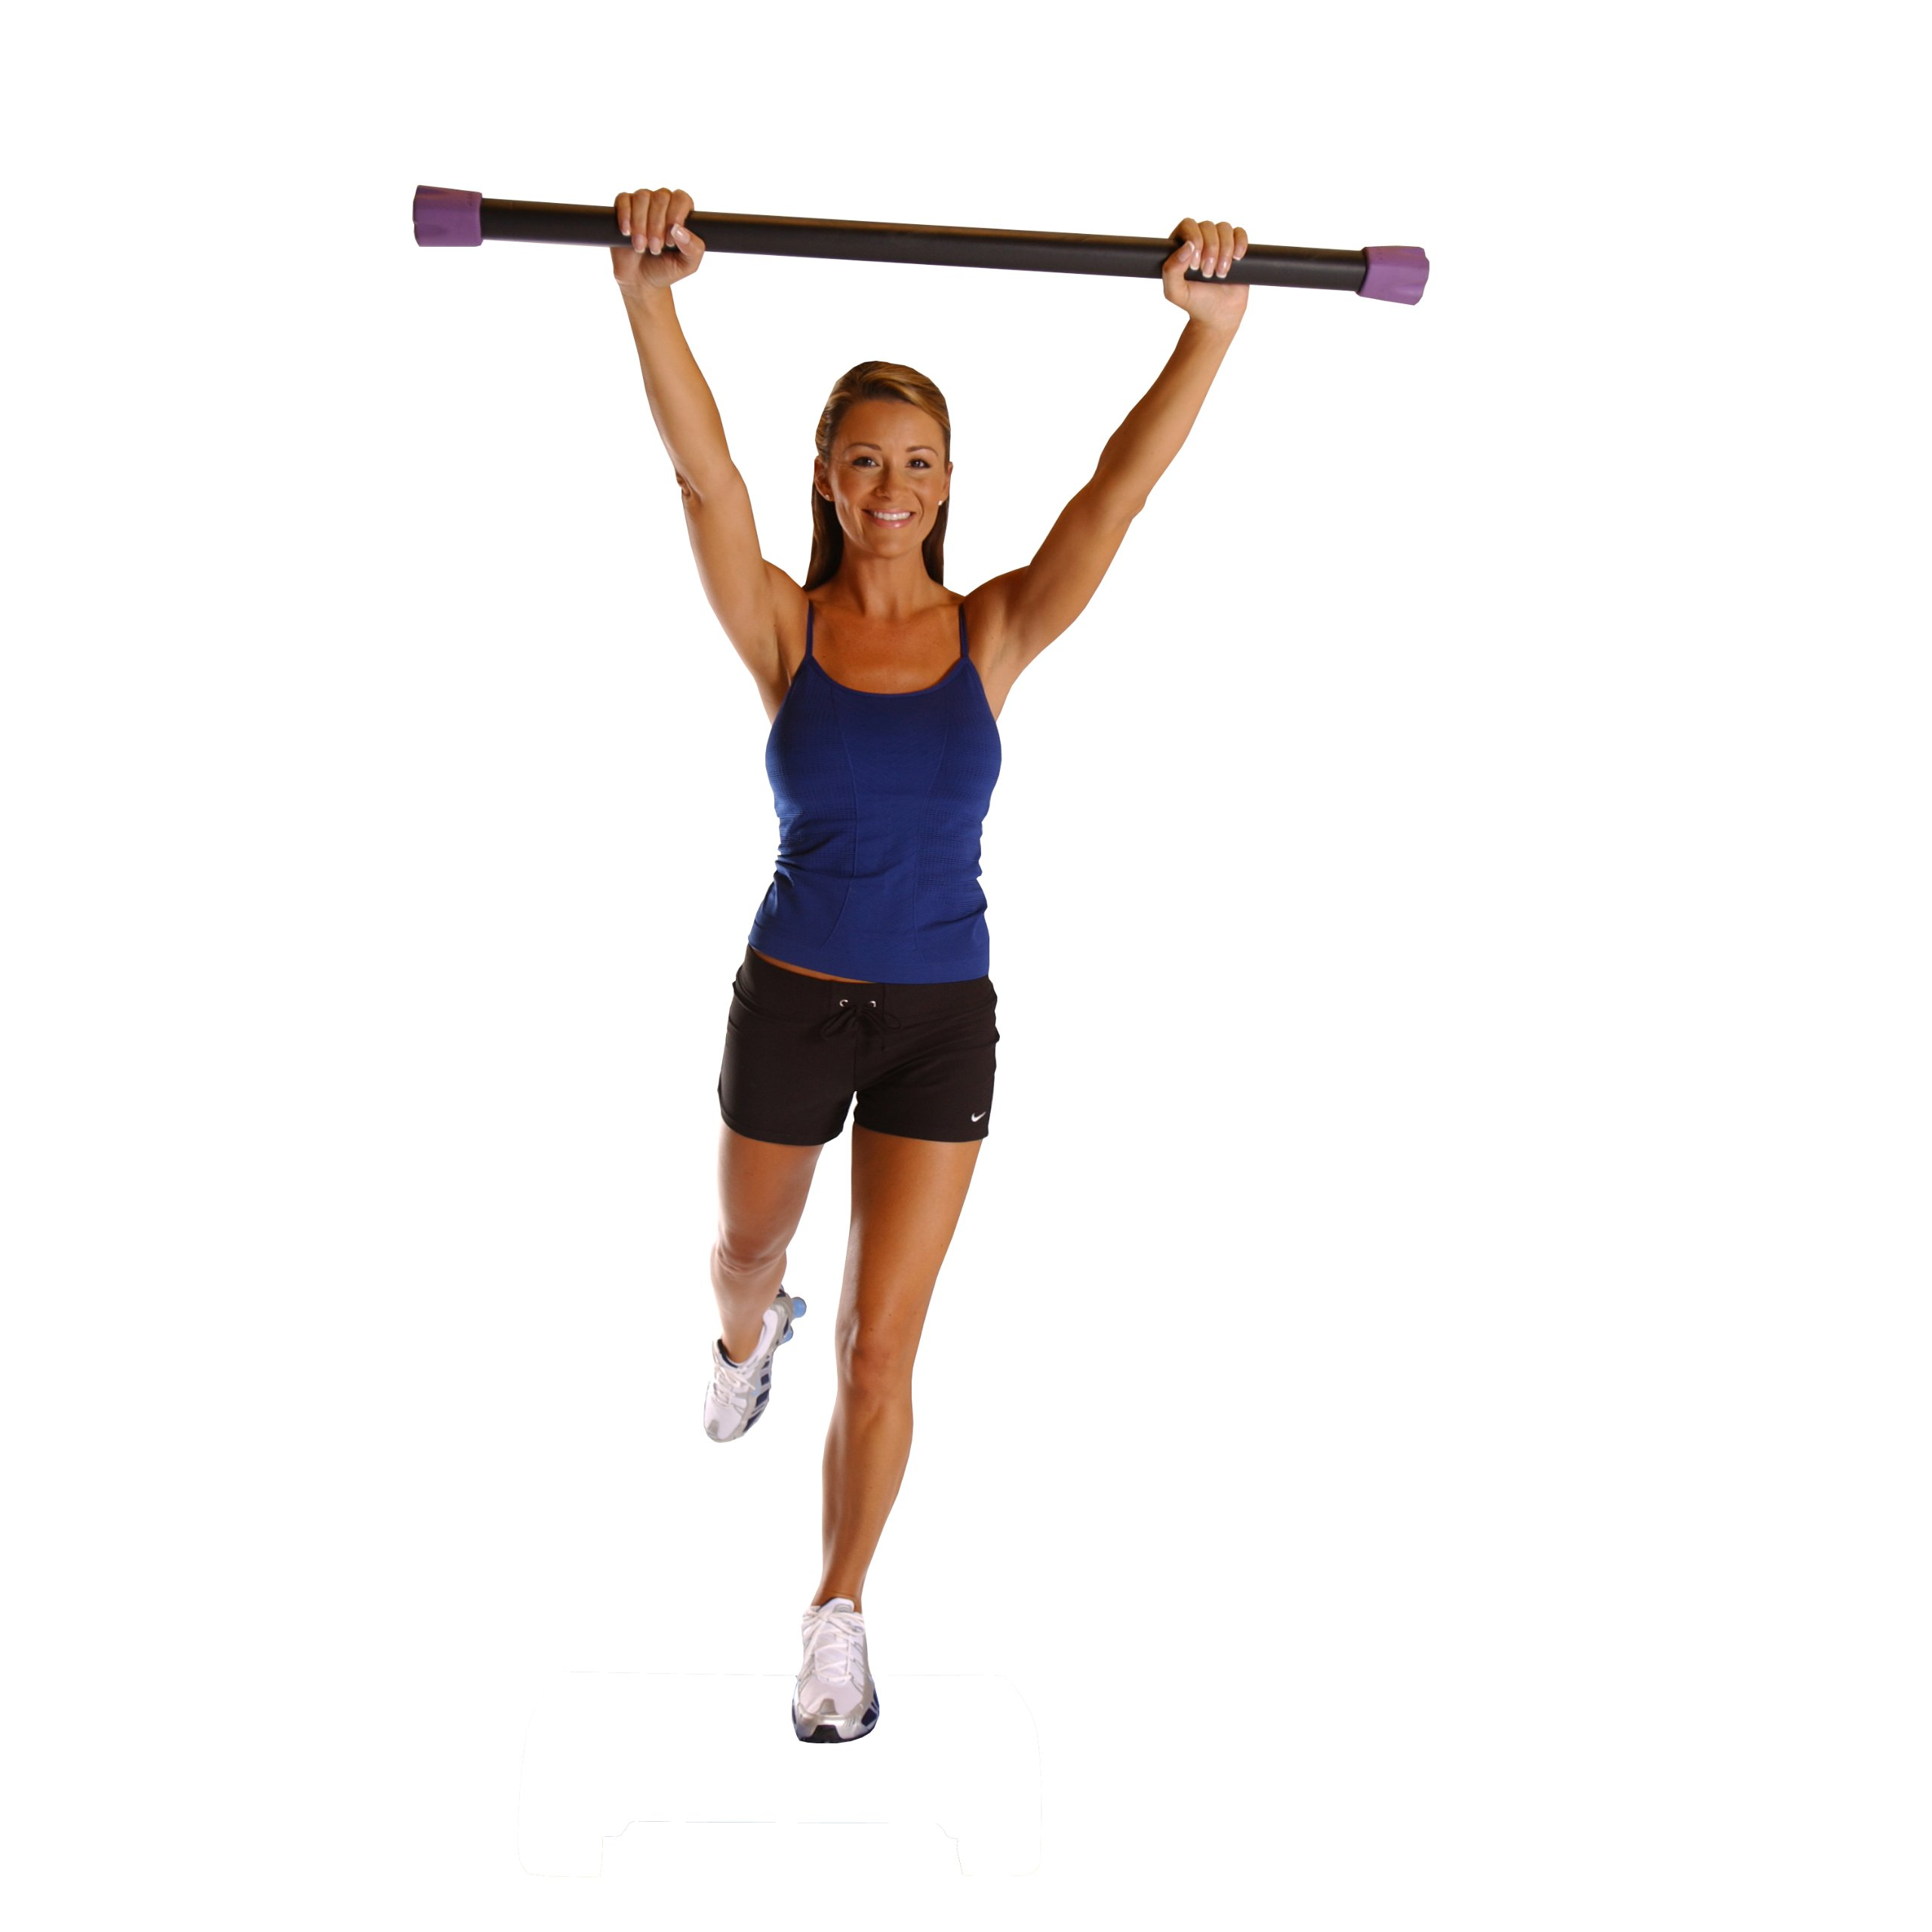 Cap Barbell Workout Bar Weighted Workout Bar Exercise